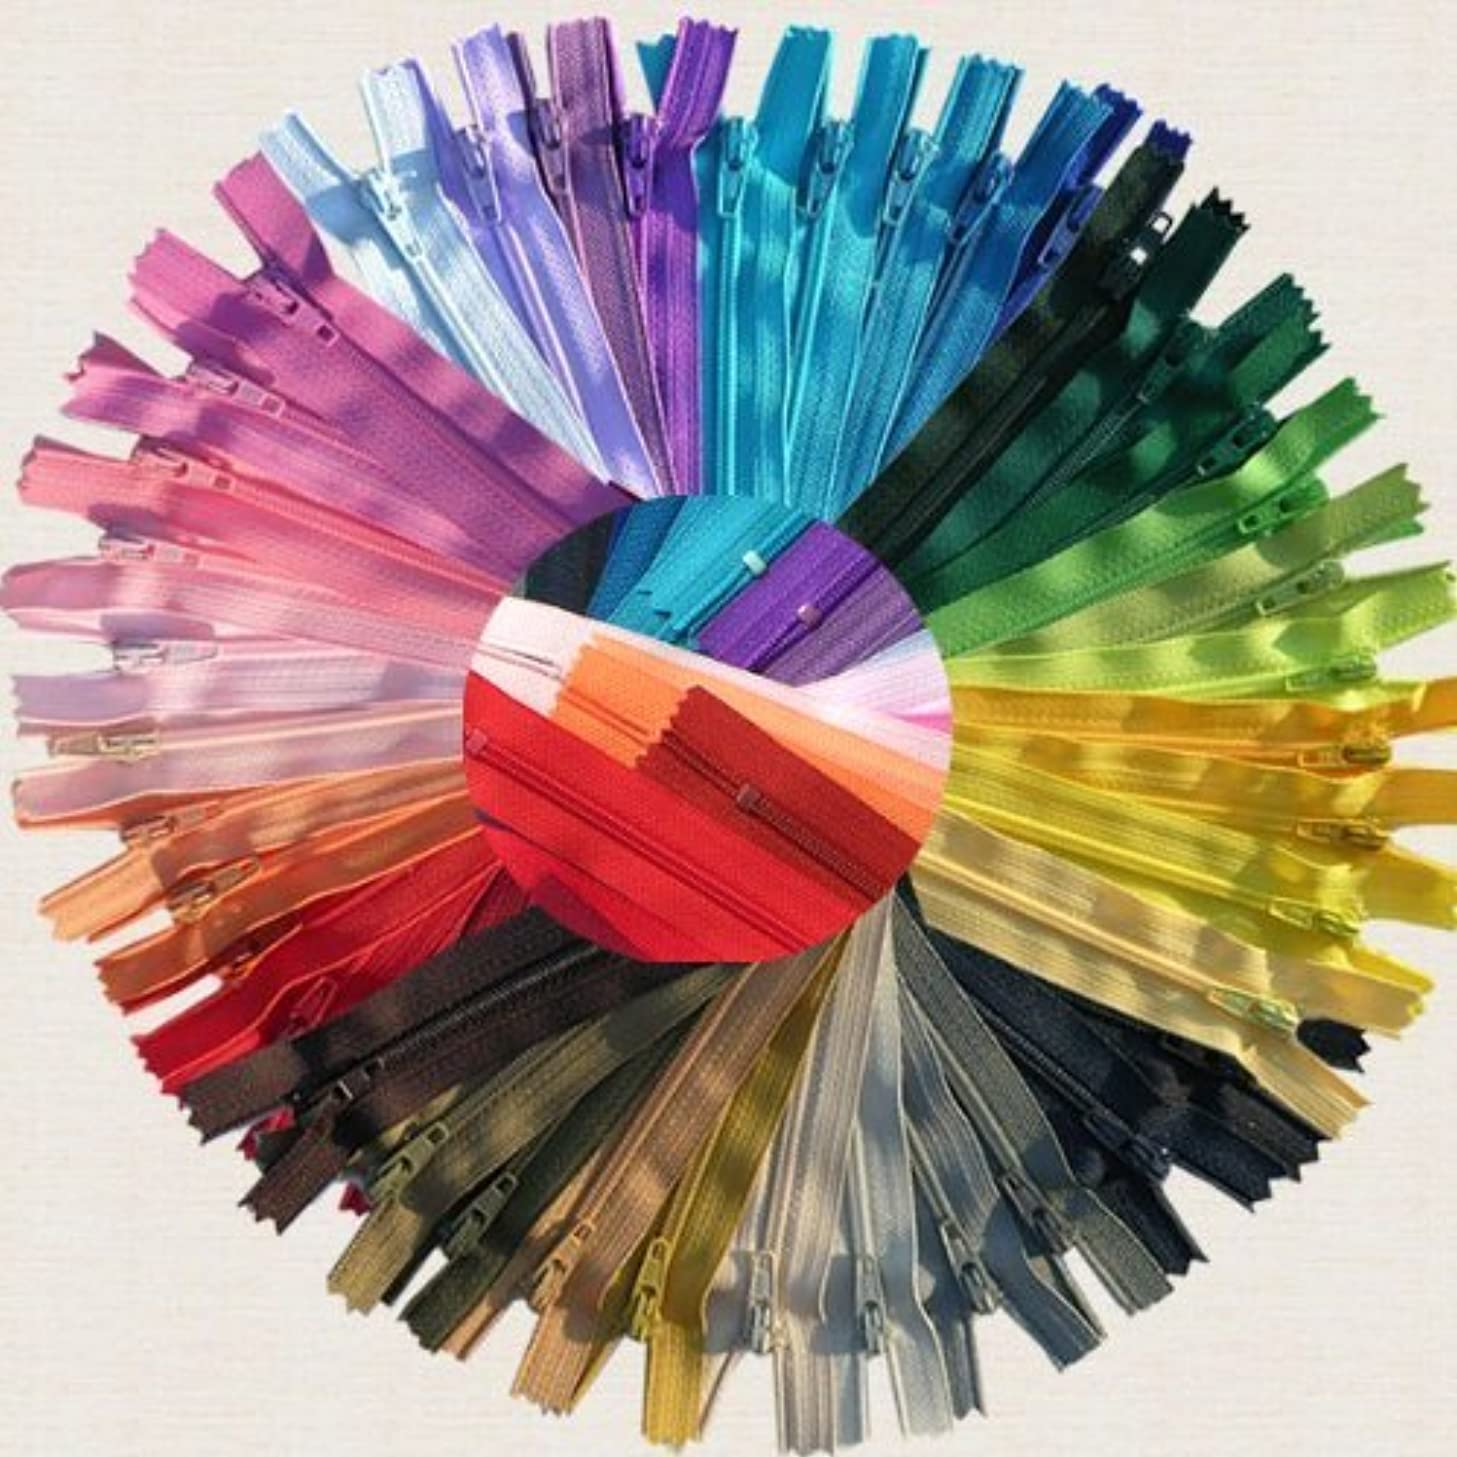 ZipperStop Wholesale Authorized Distributor YKK? 24 Inch #3 Skirt & Dress Nylon Coil Zippers - Assortment of Colors (25 Zippers)